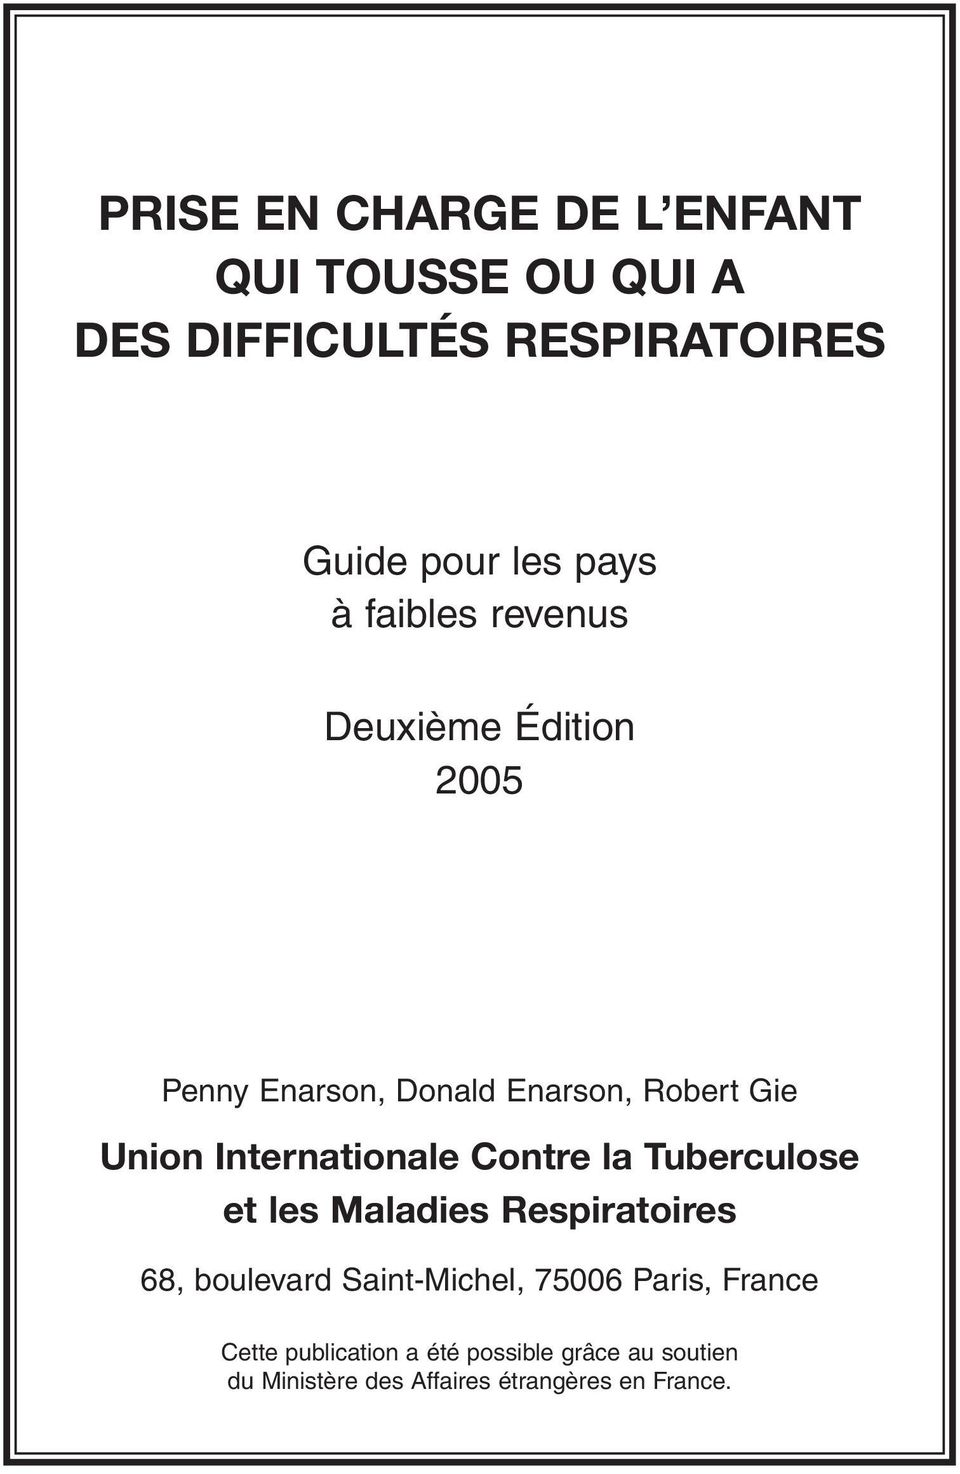 Internationale Contre la Tuberculose et les Maladies Respiratoires 68, boulevard Saint-Michel,